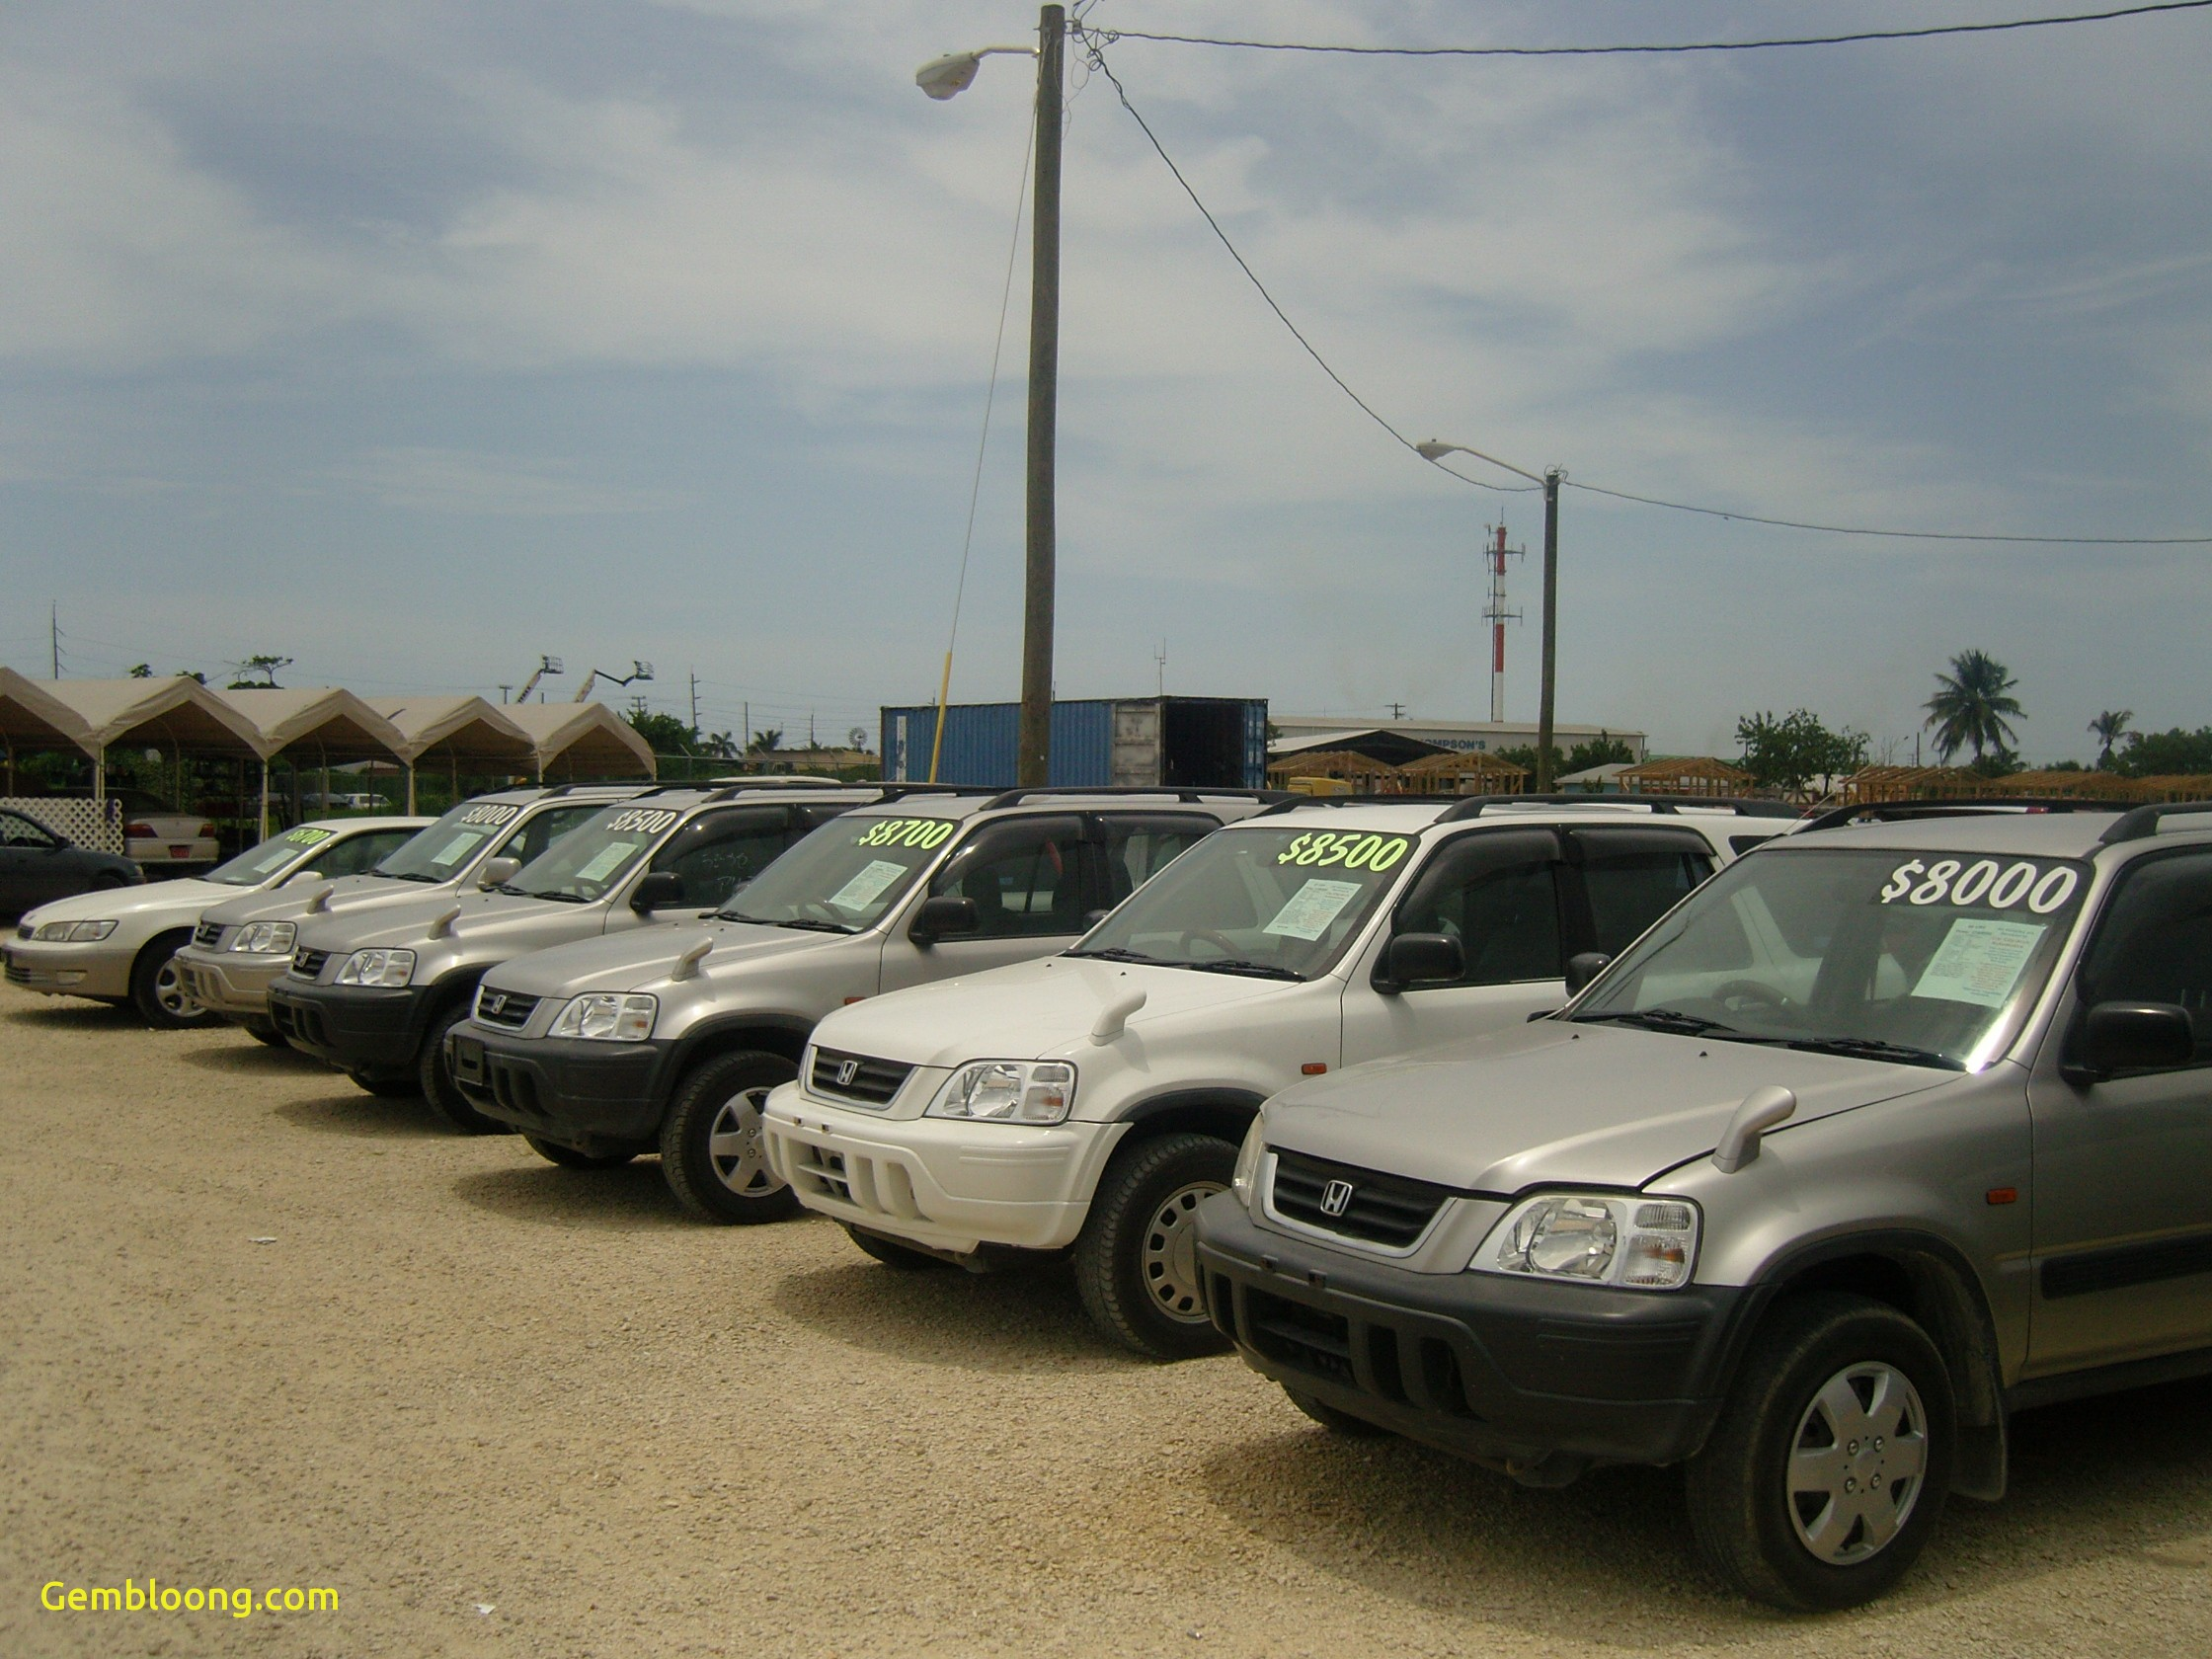 Cars for Sale Classifieds Zimbabwe Luxury Luxury Cars for Sale Classifieds Zimbabwe